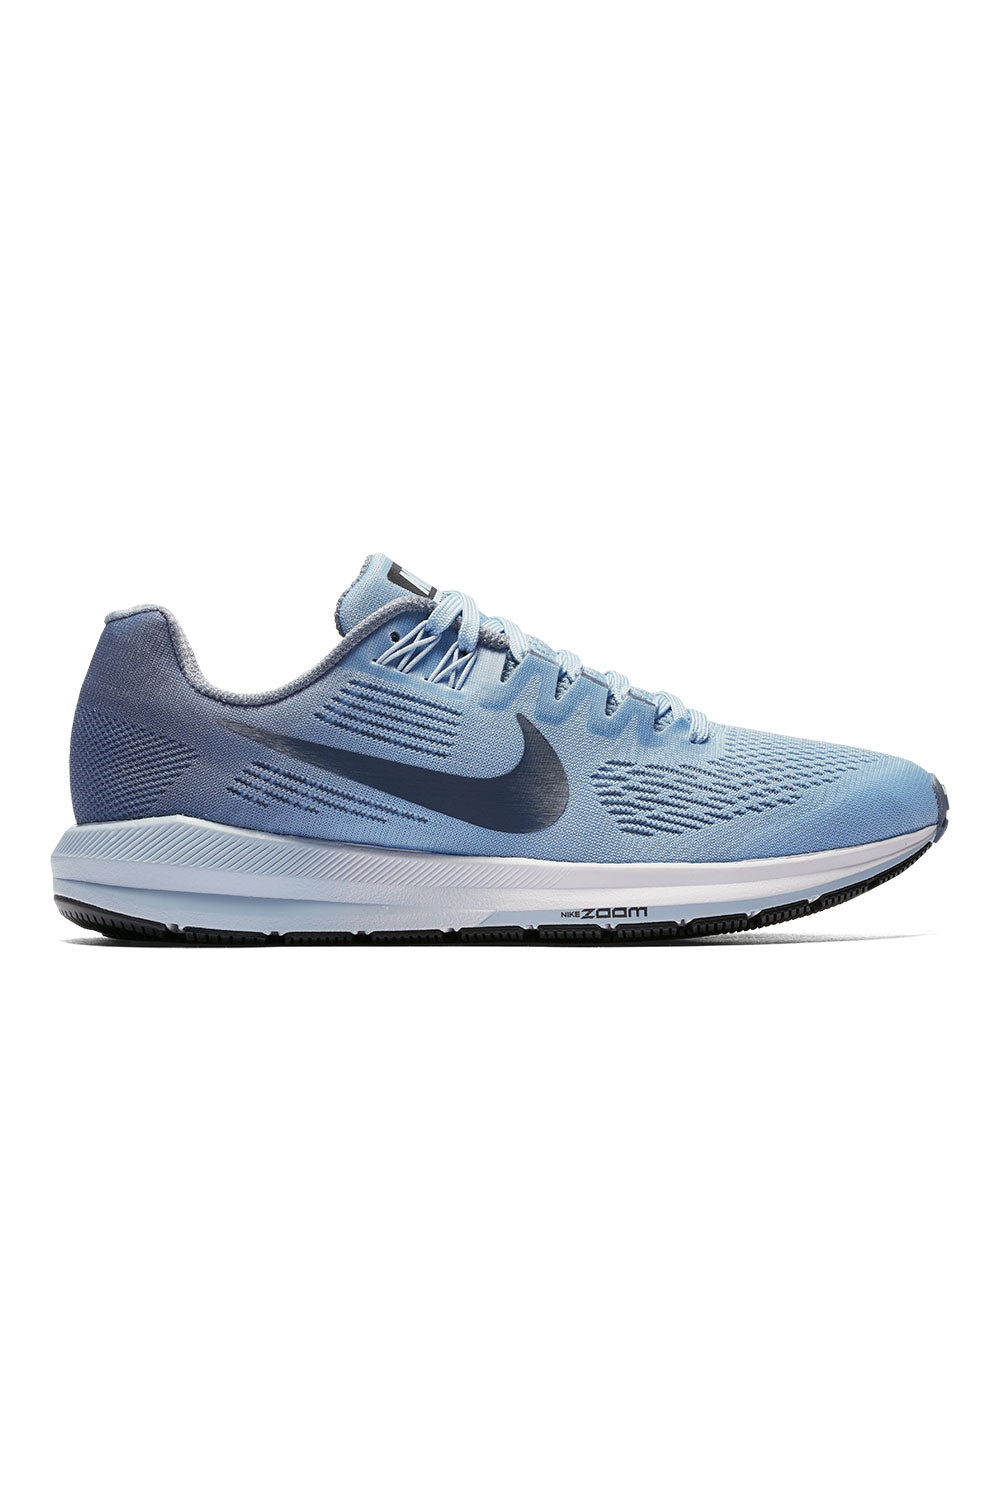 f70e4cd6e3e6c Women s Air Zoom Structure 21 by Nike at Gazelle Sports